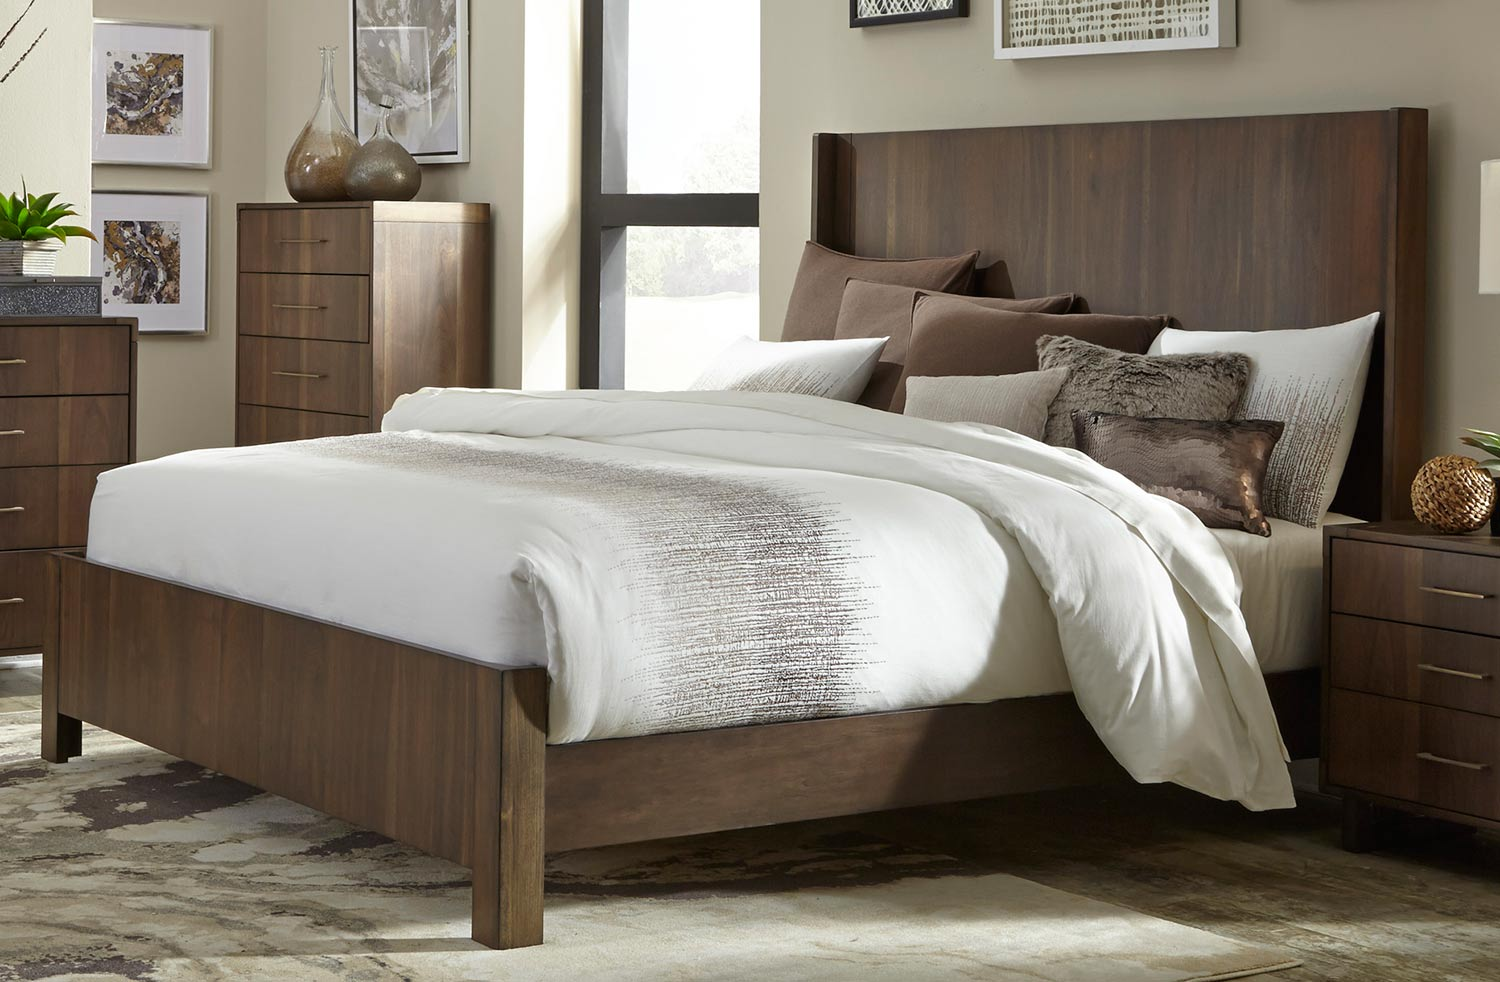 Homelegance Gulfton Bed - Walnut